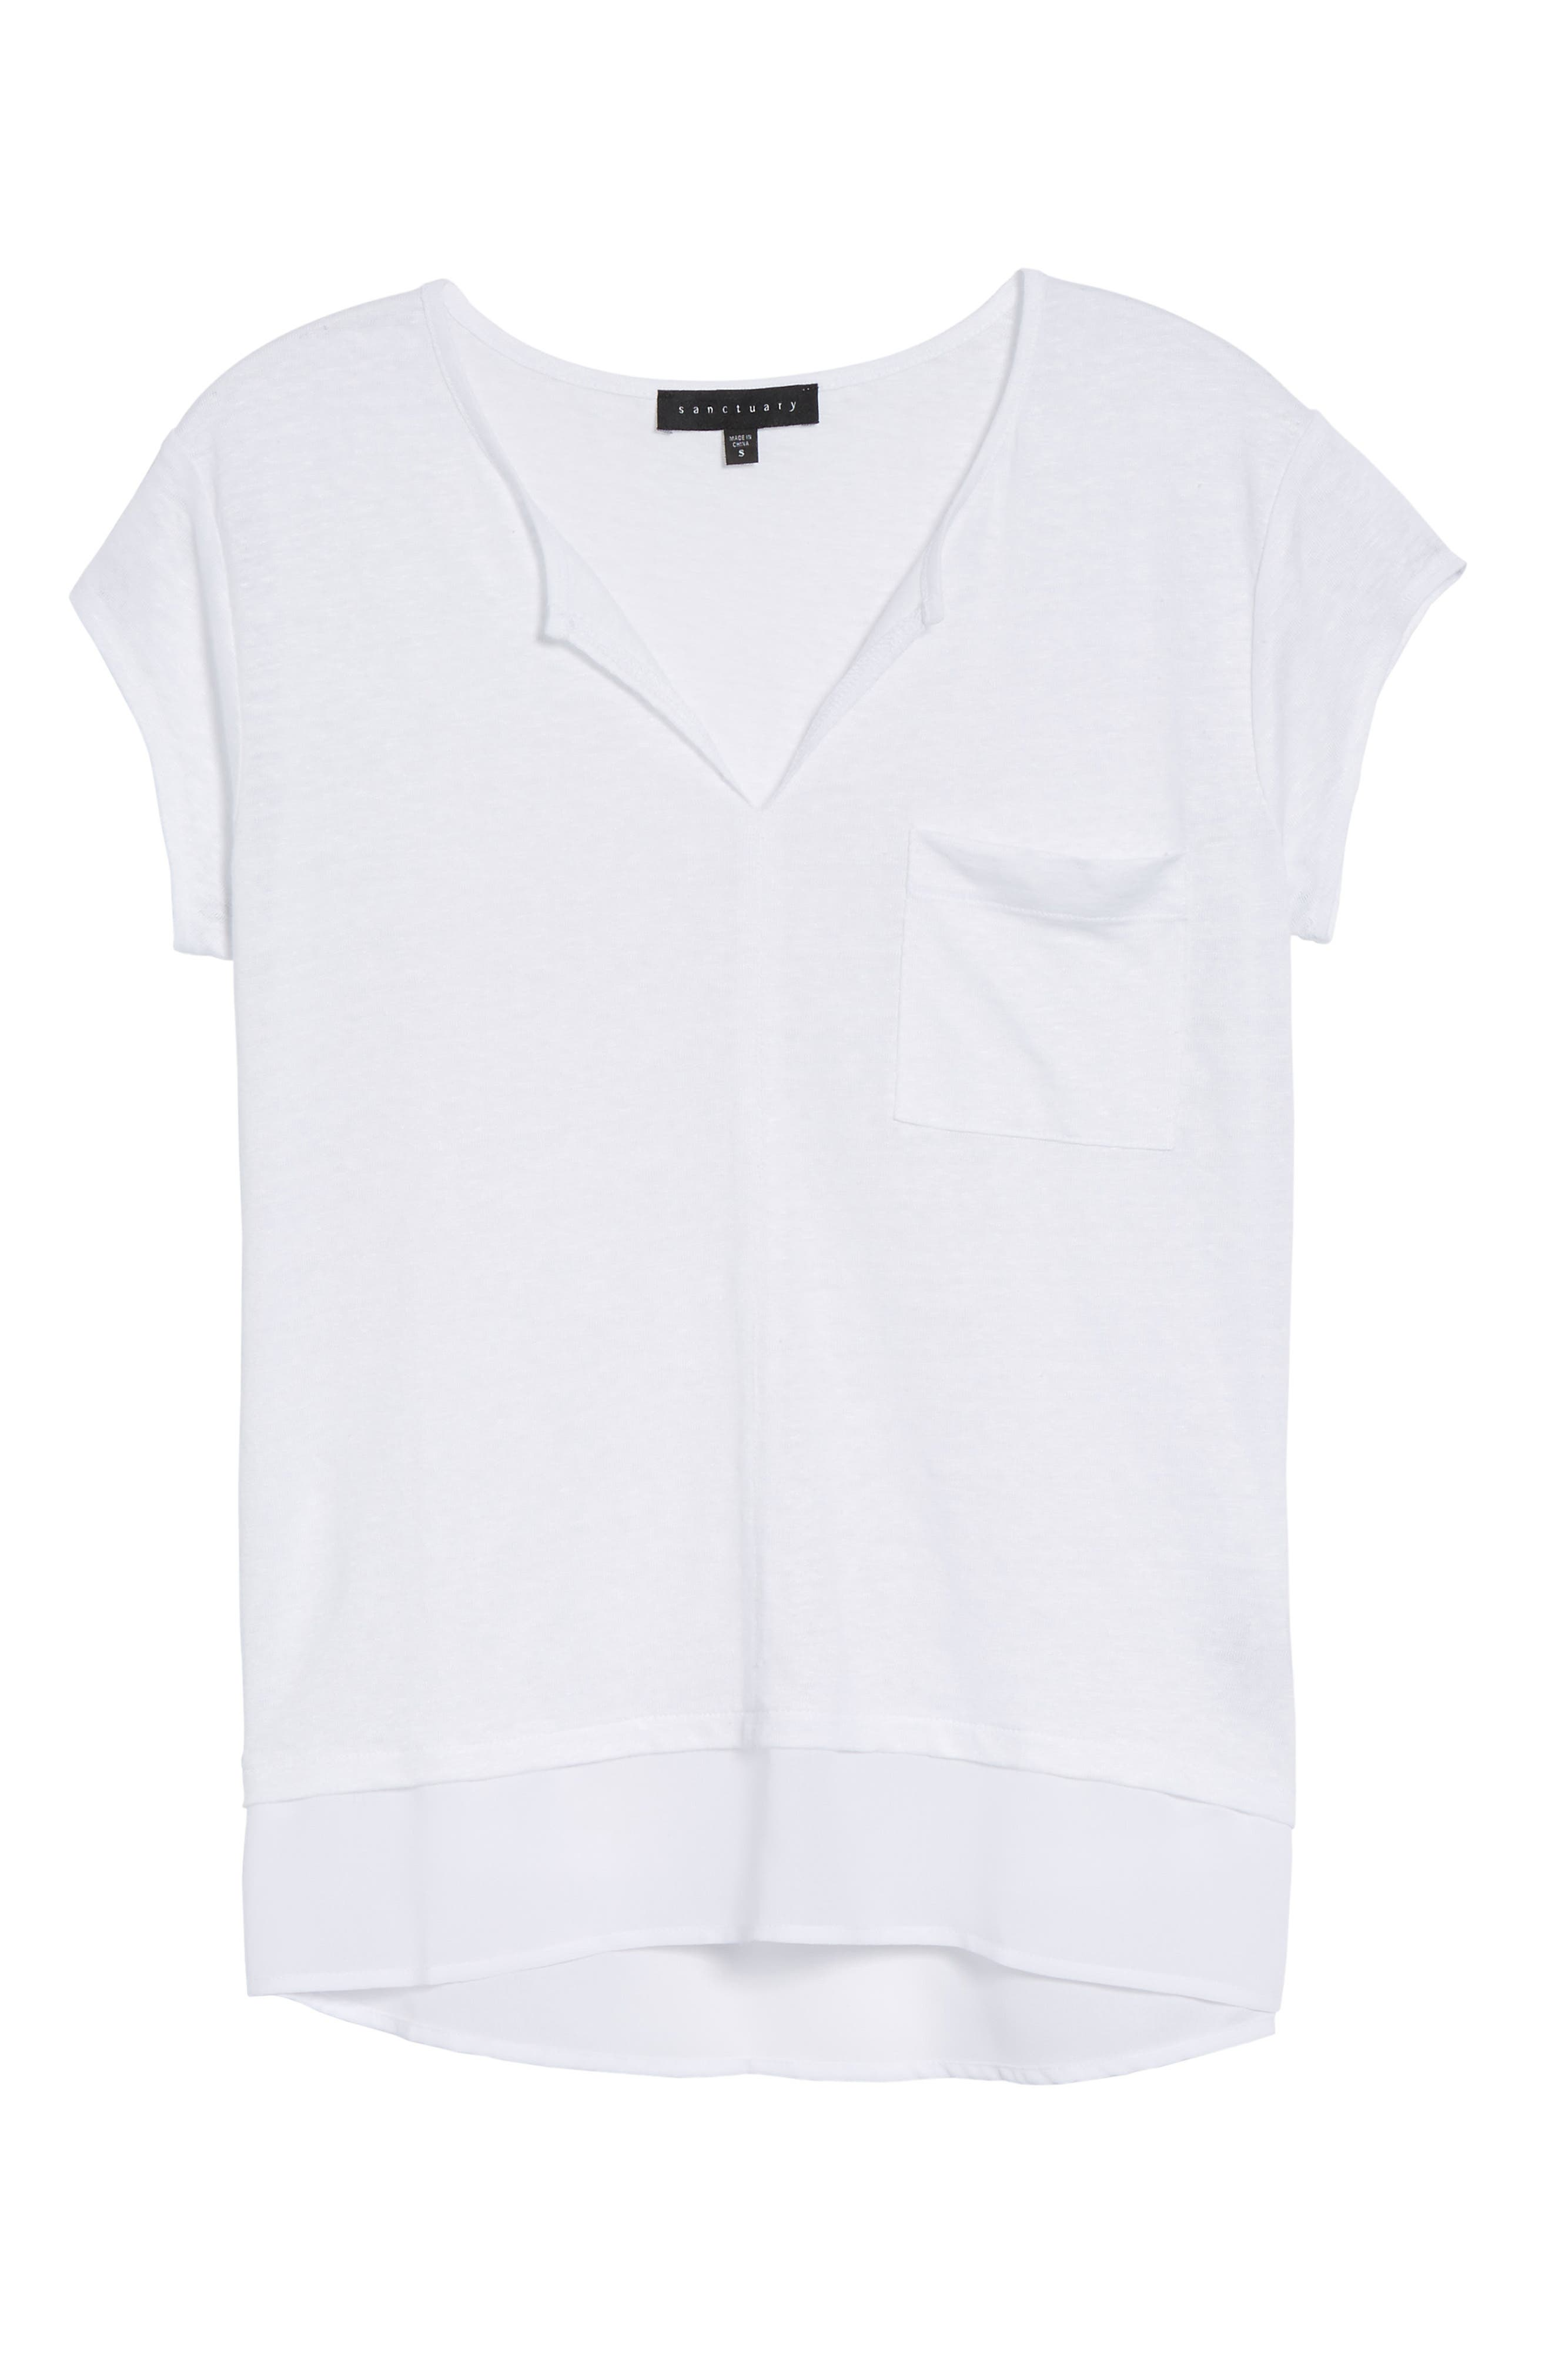 City Mix Layered Look Tee,                             Alternate thumbnail 91, color,